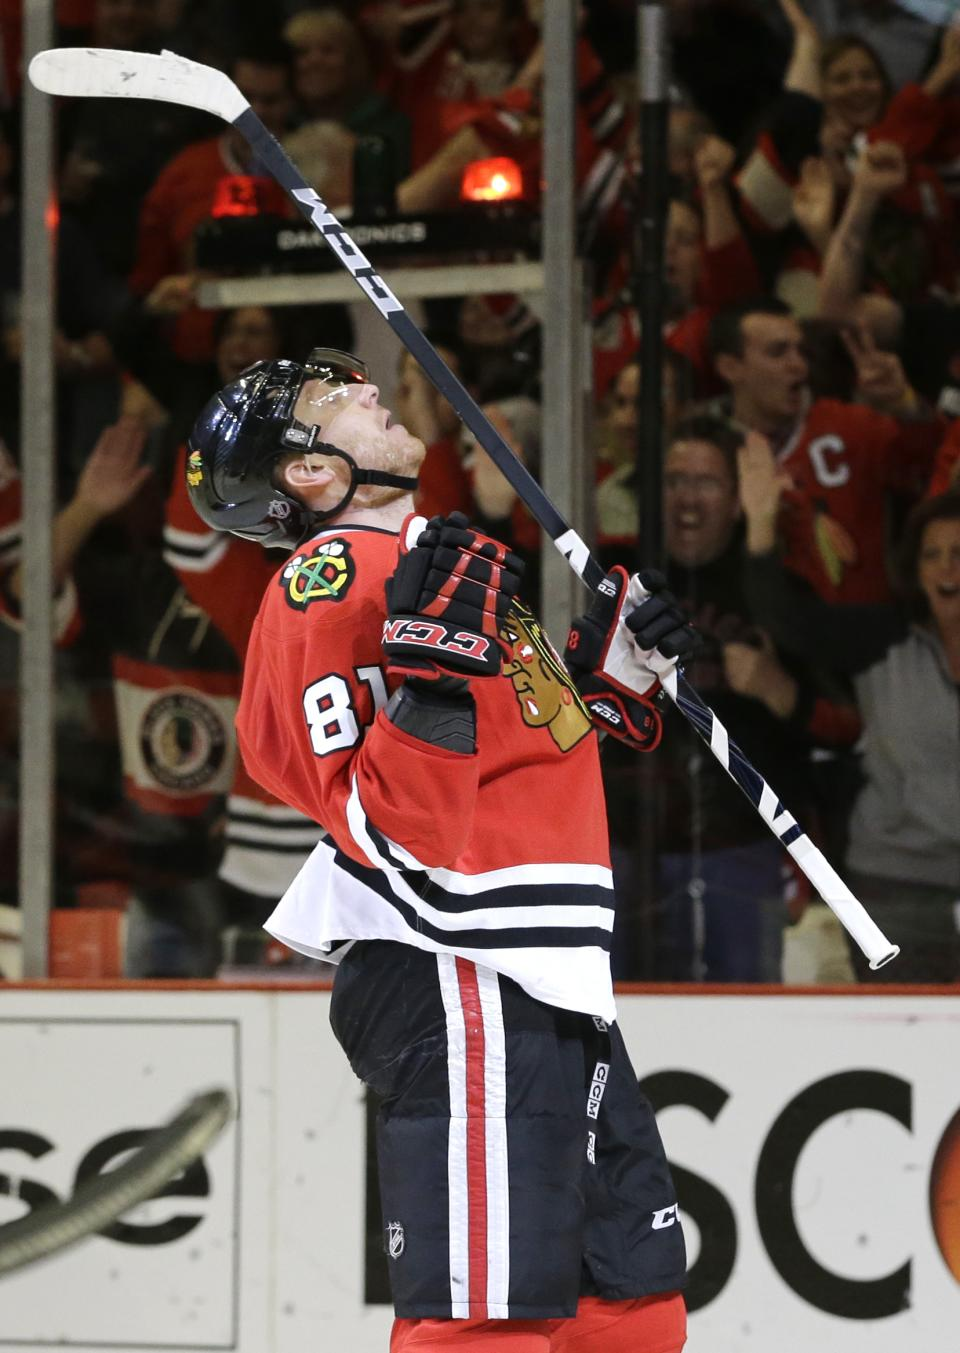 Chicago Blackhawks' Marian Hossa (81) celebrates after scoring his second goal against the Minnesota Wild during the second period of Game 5 of an NHL hockey Stanley Cup first-round playoff series in Chicago, Thursday, May 9, 2013. (AP Photo/Nam Y. Huh)